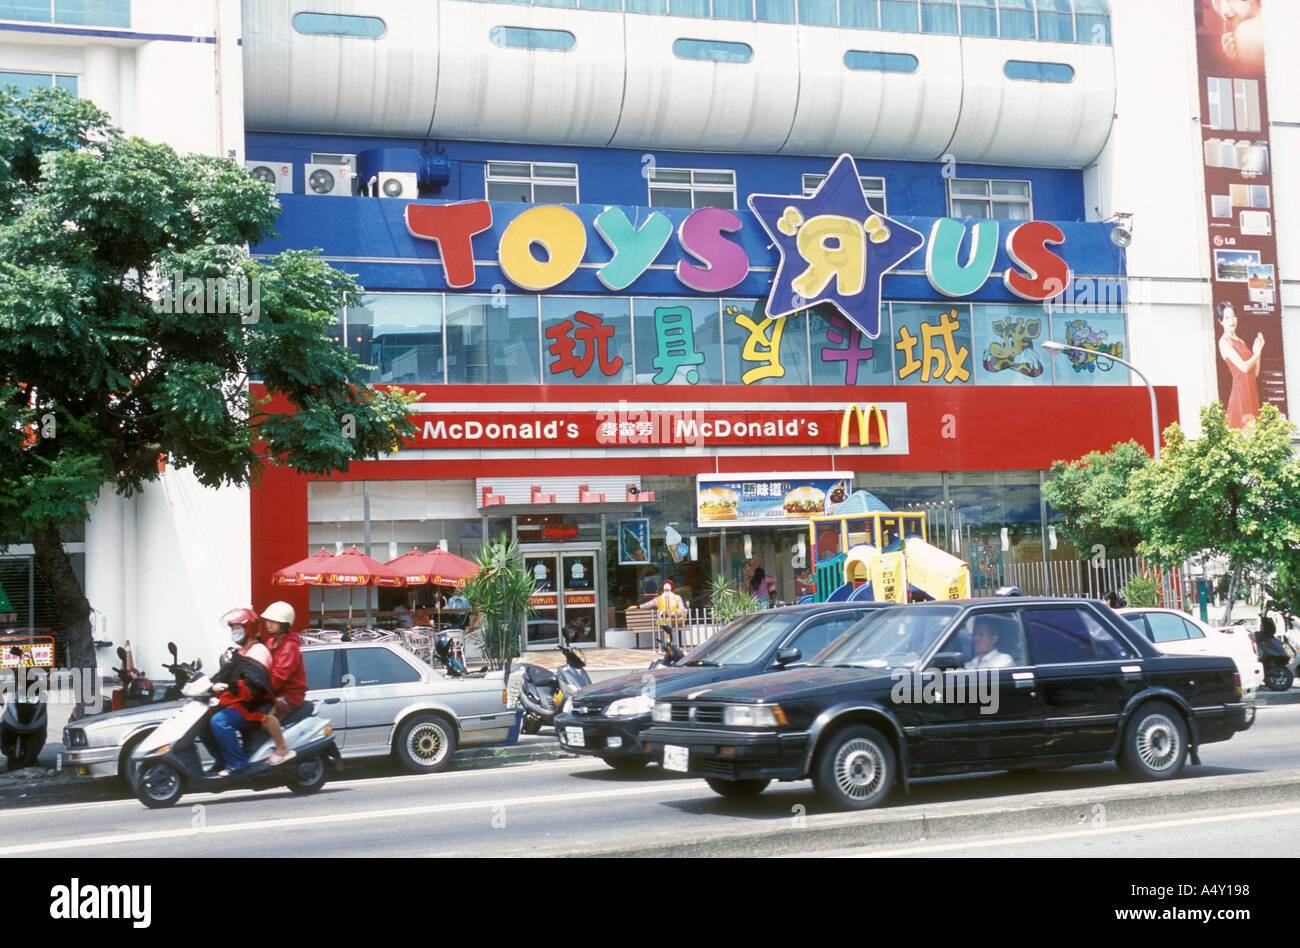 Badewannenspielzeug Toys R Us Mcdonalds And Toys R Us In Republic Of China Stock Photo